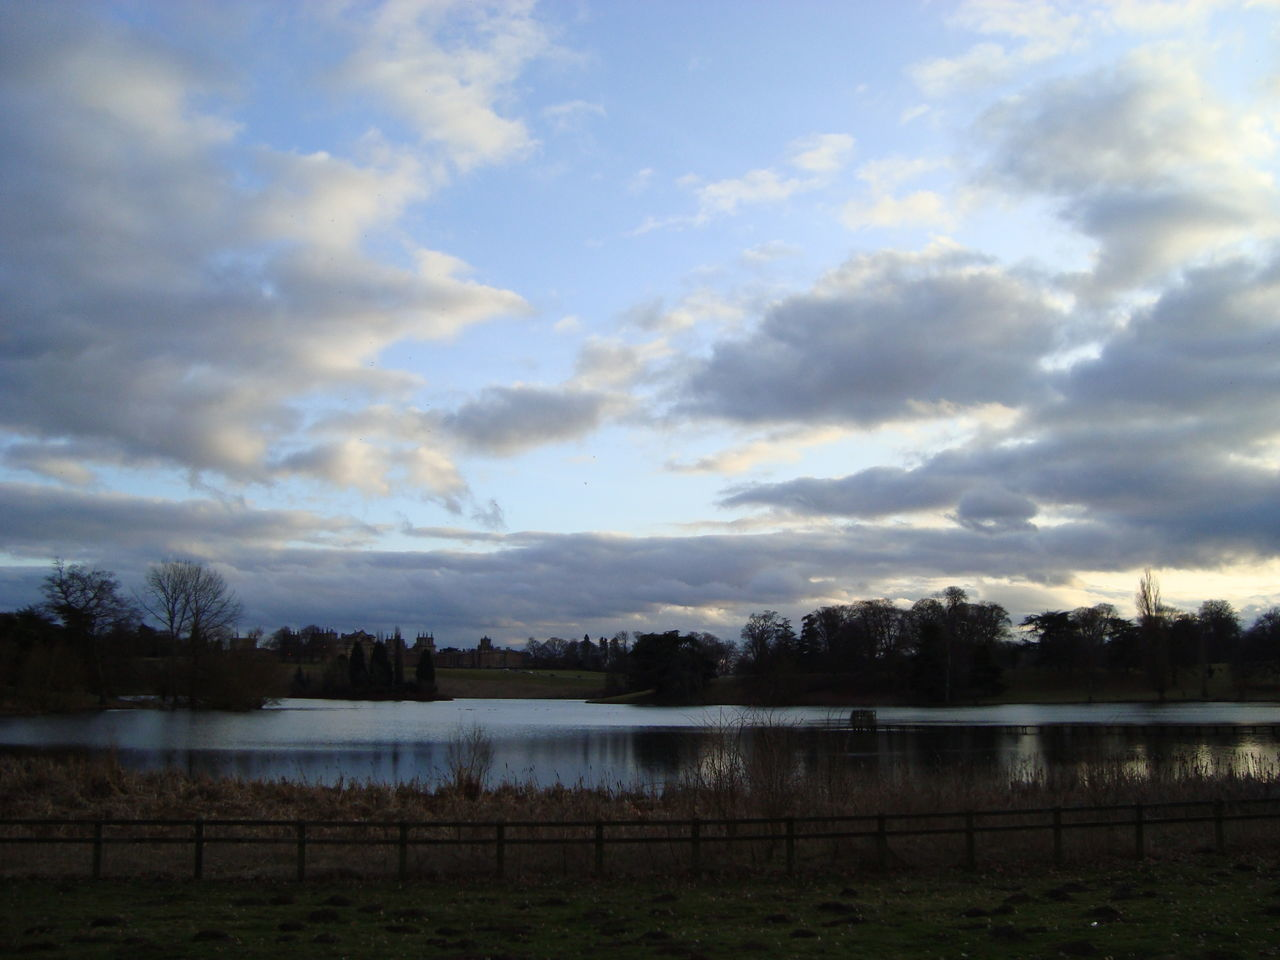 Evening View of Blenham Palace across the pond Atmospheric Mood Blenheim Blenheimpalace Cloud Cloud - Sky Cloudscape Cloudy Distant Dramatic Sky Lake Majestic Manor Manor House Moody Sky Orange Color Outdoors Pond Remote Scenics Silhouette Sky Storm Cloud Sunset Tranquil Scene Tranquility